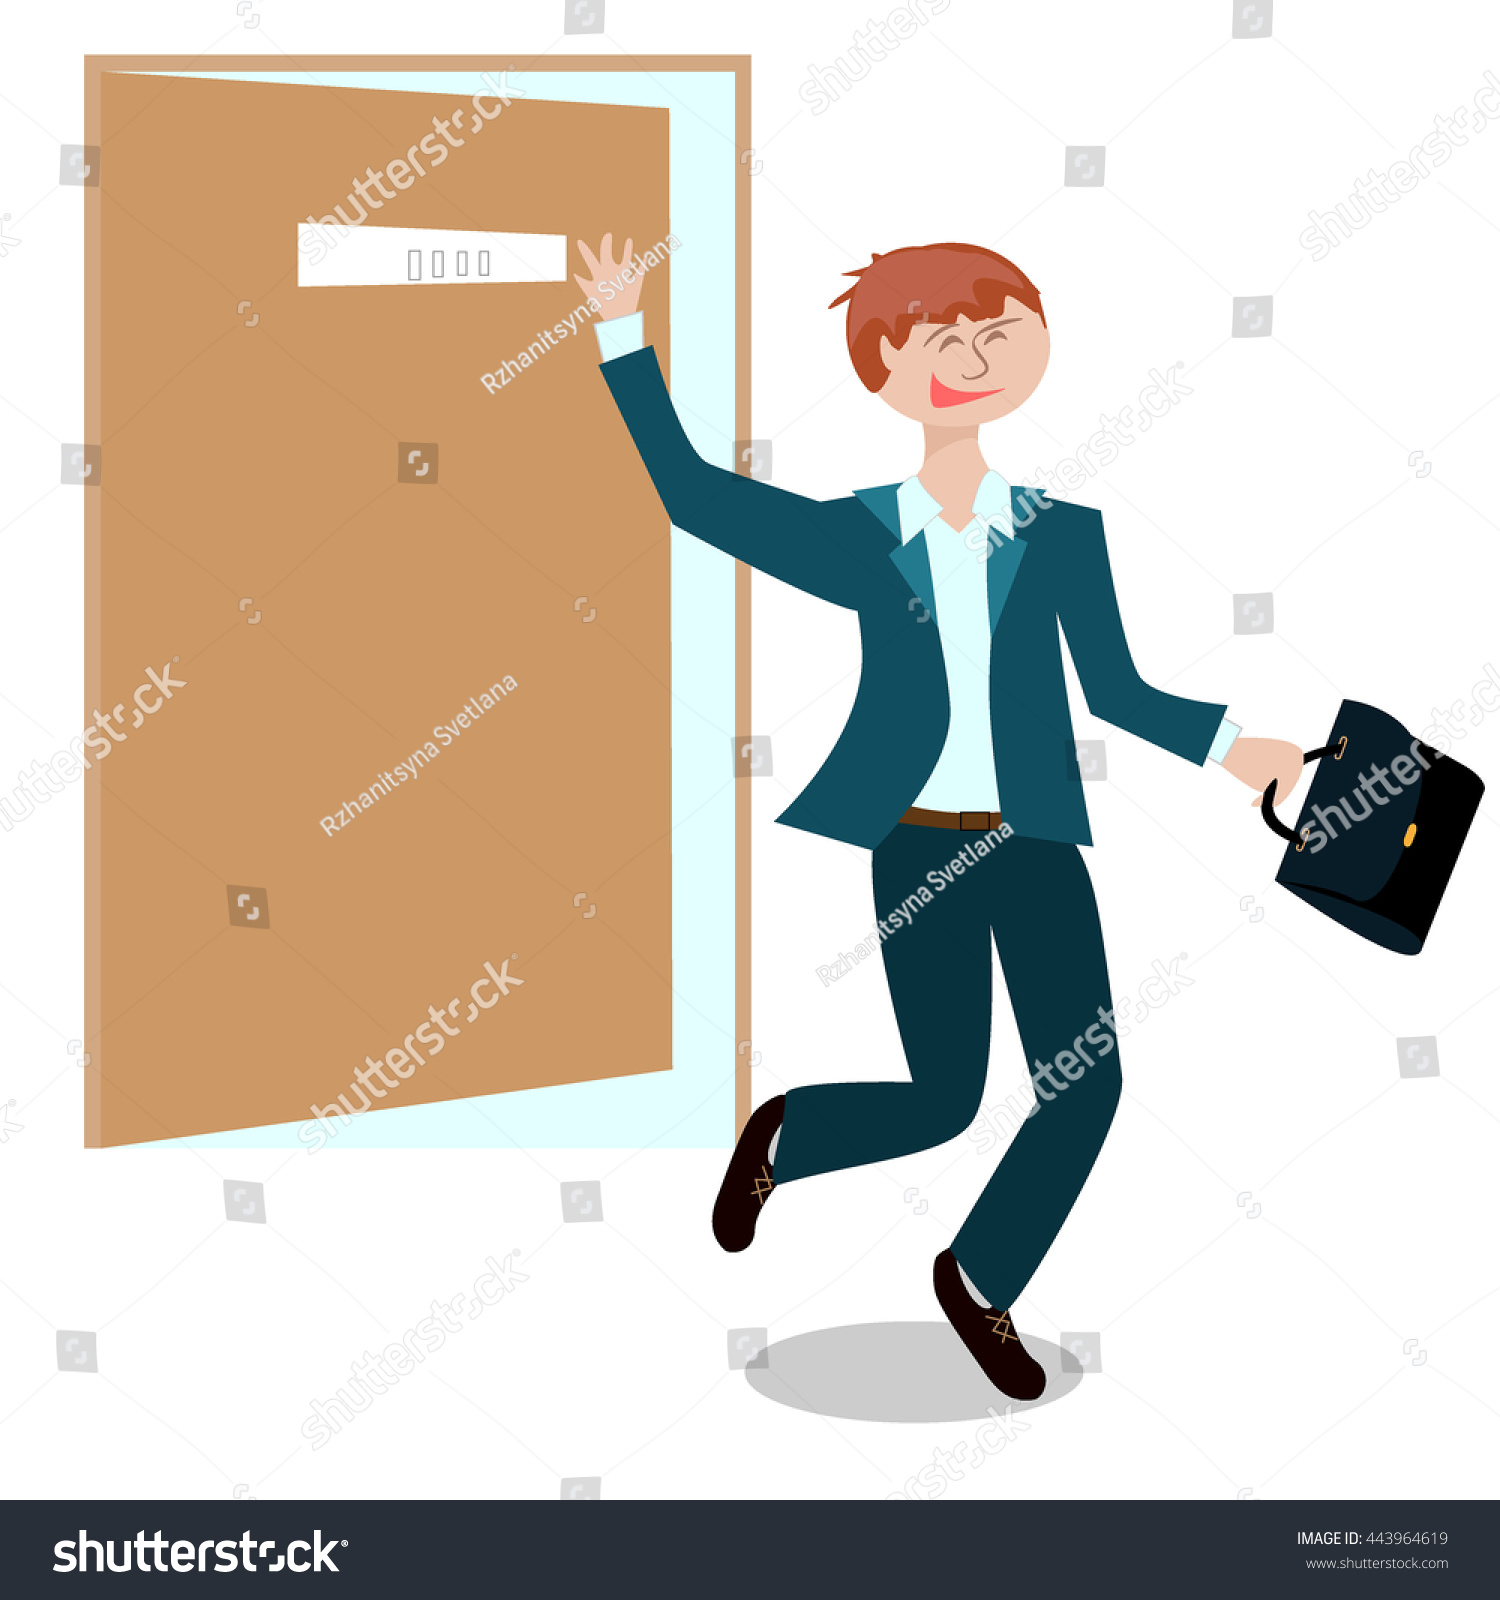 young man jumping happily leaving office stock illustration young man jumping happily leaving the office after the interview to work and waving portfolio